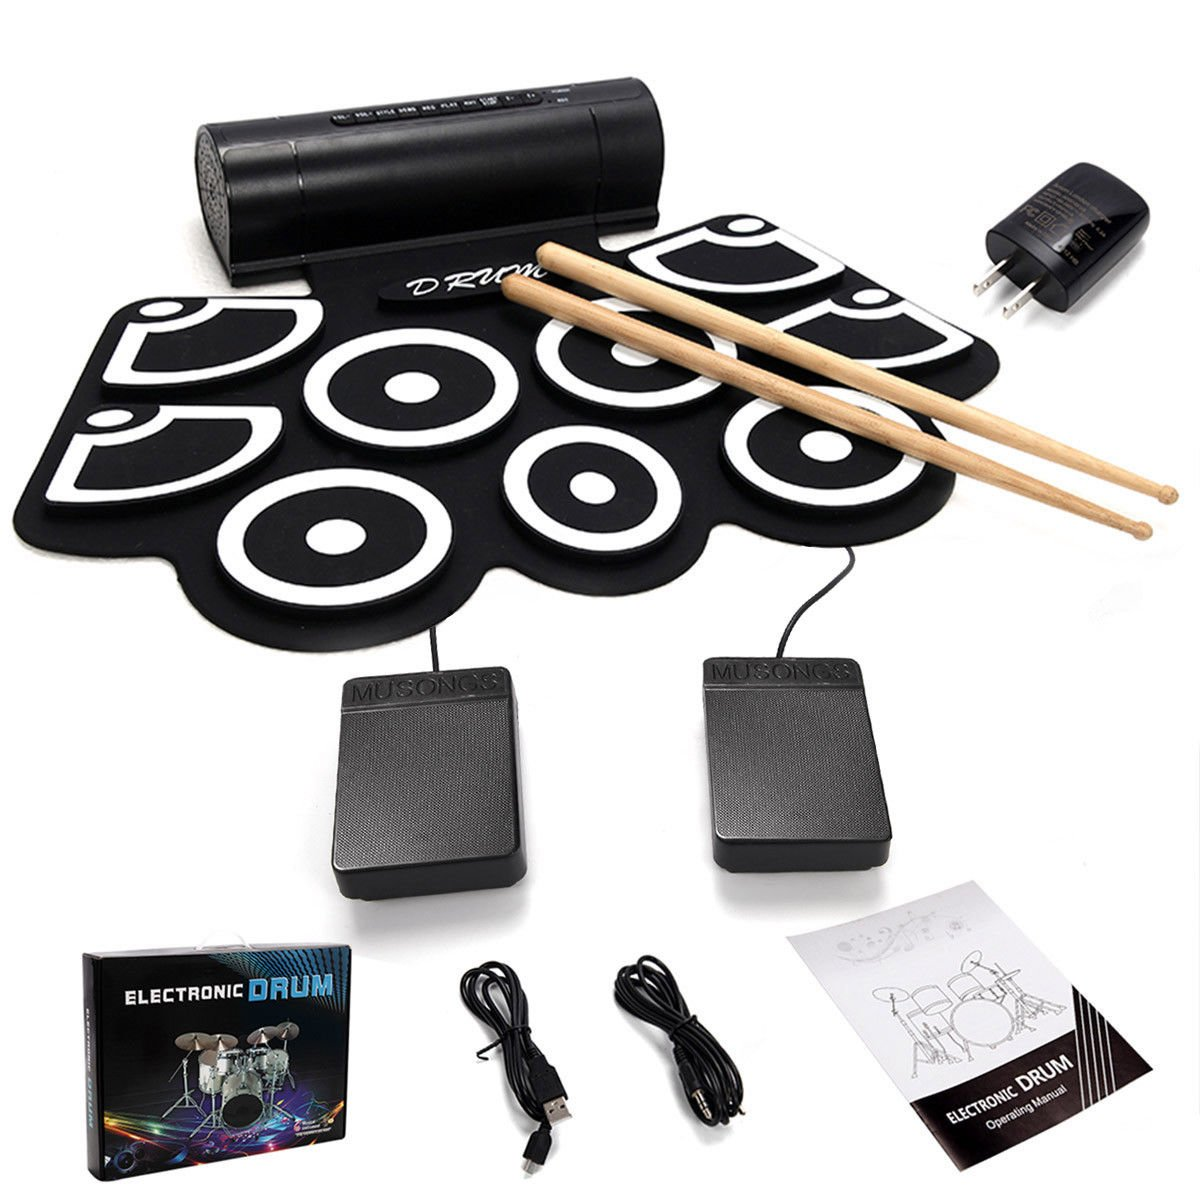 Costzon 9 Pad Electronic Roll Up Drum Kit, USB MIDI With Built-in Speakers, Foot Pedals, Drum Sticks, Power Supply